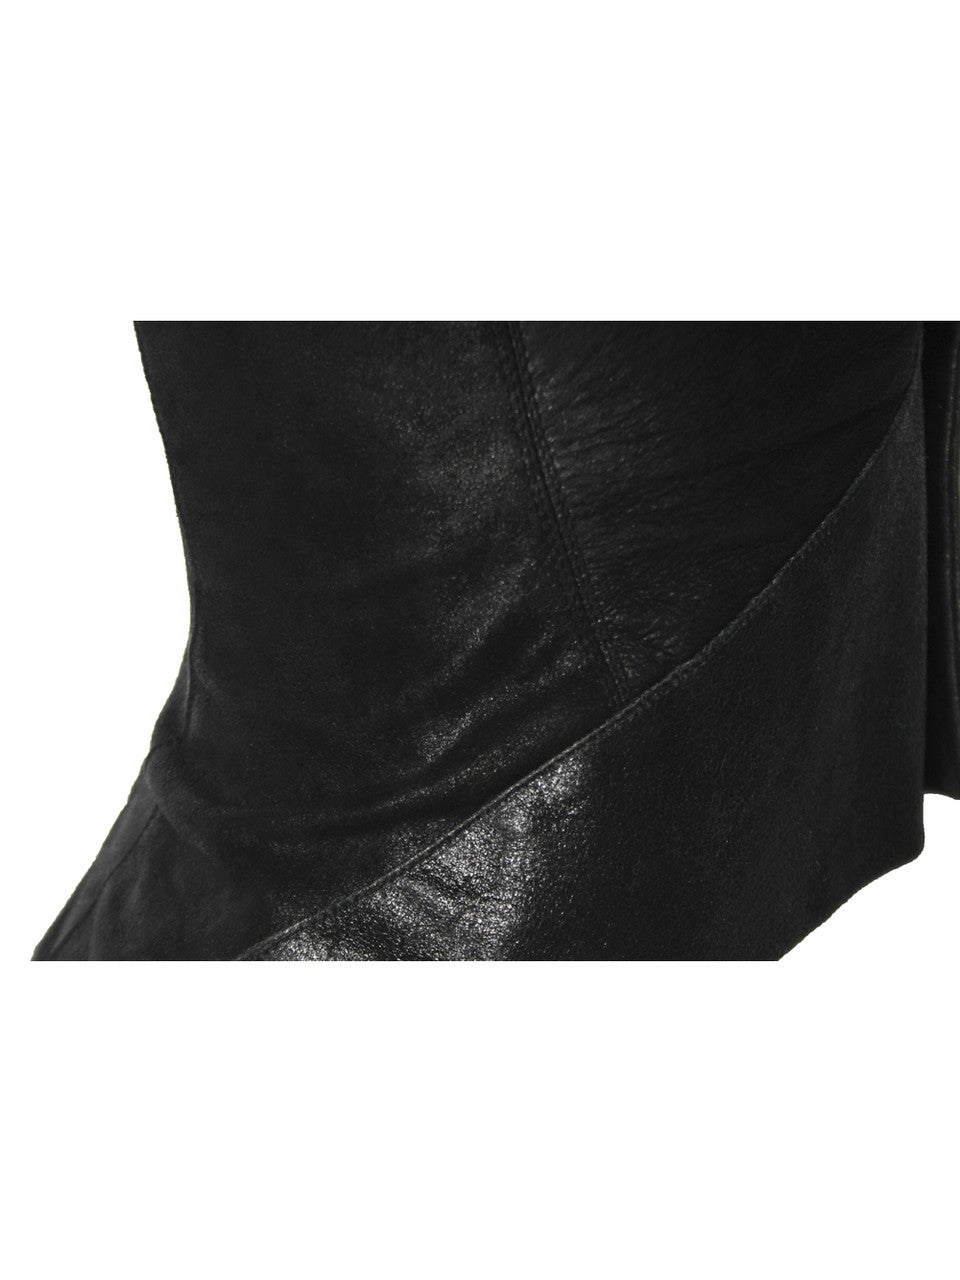 Rick Owens Black Leather Fitted Vest